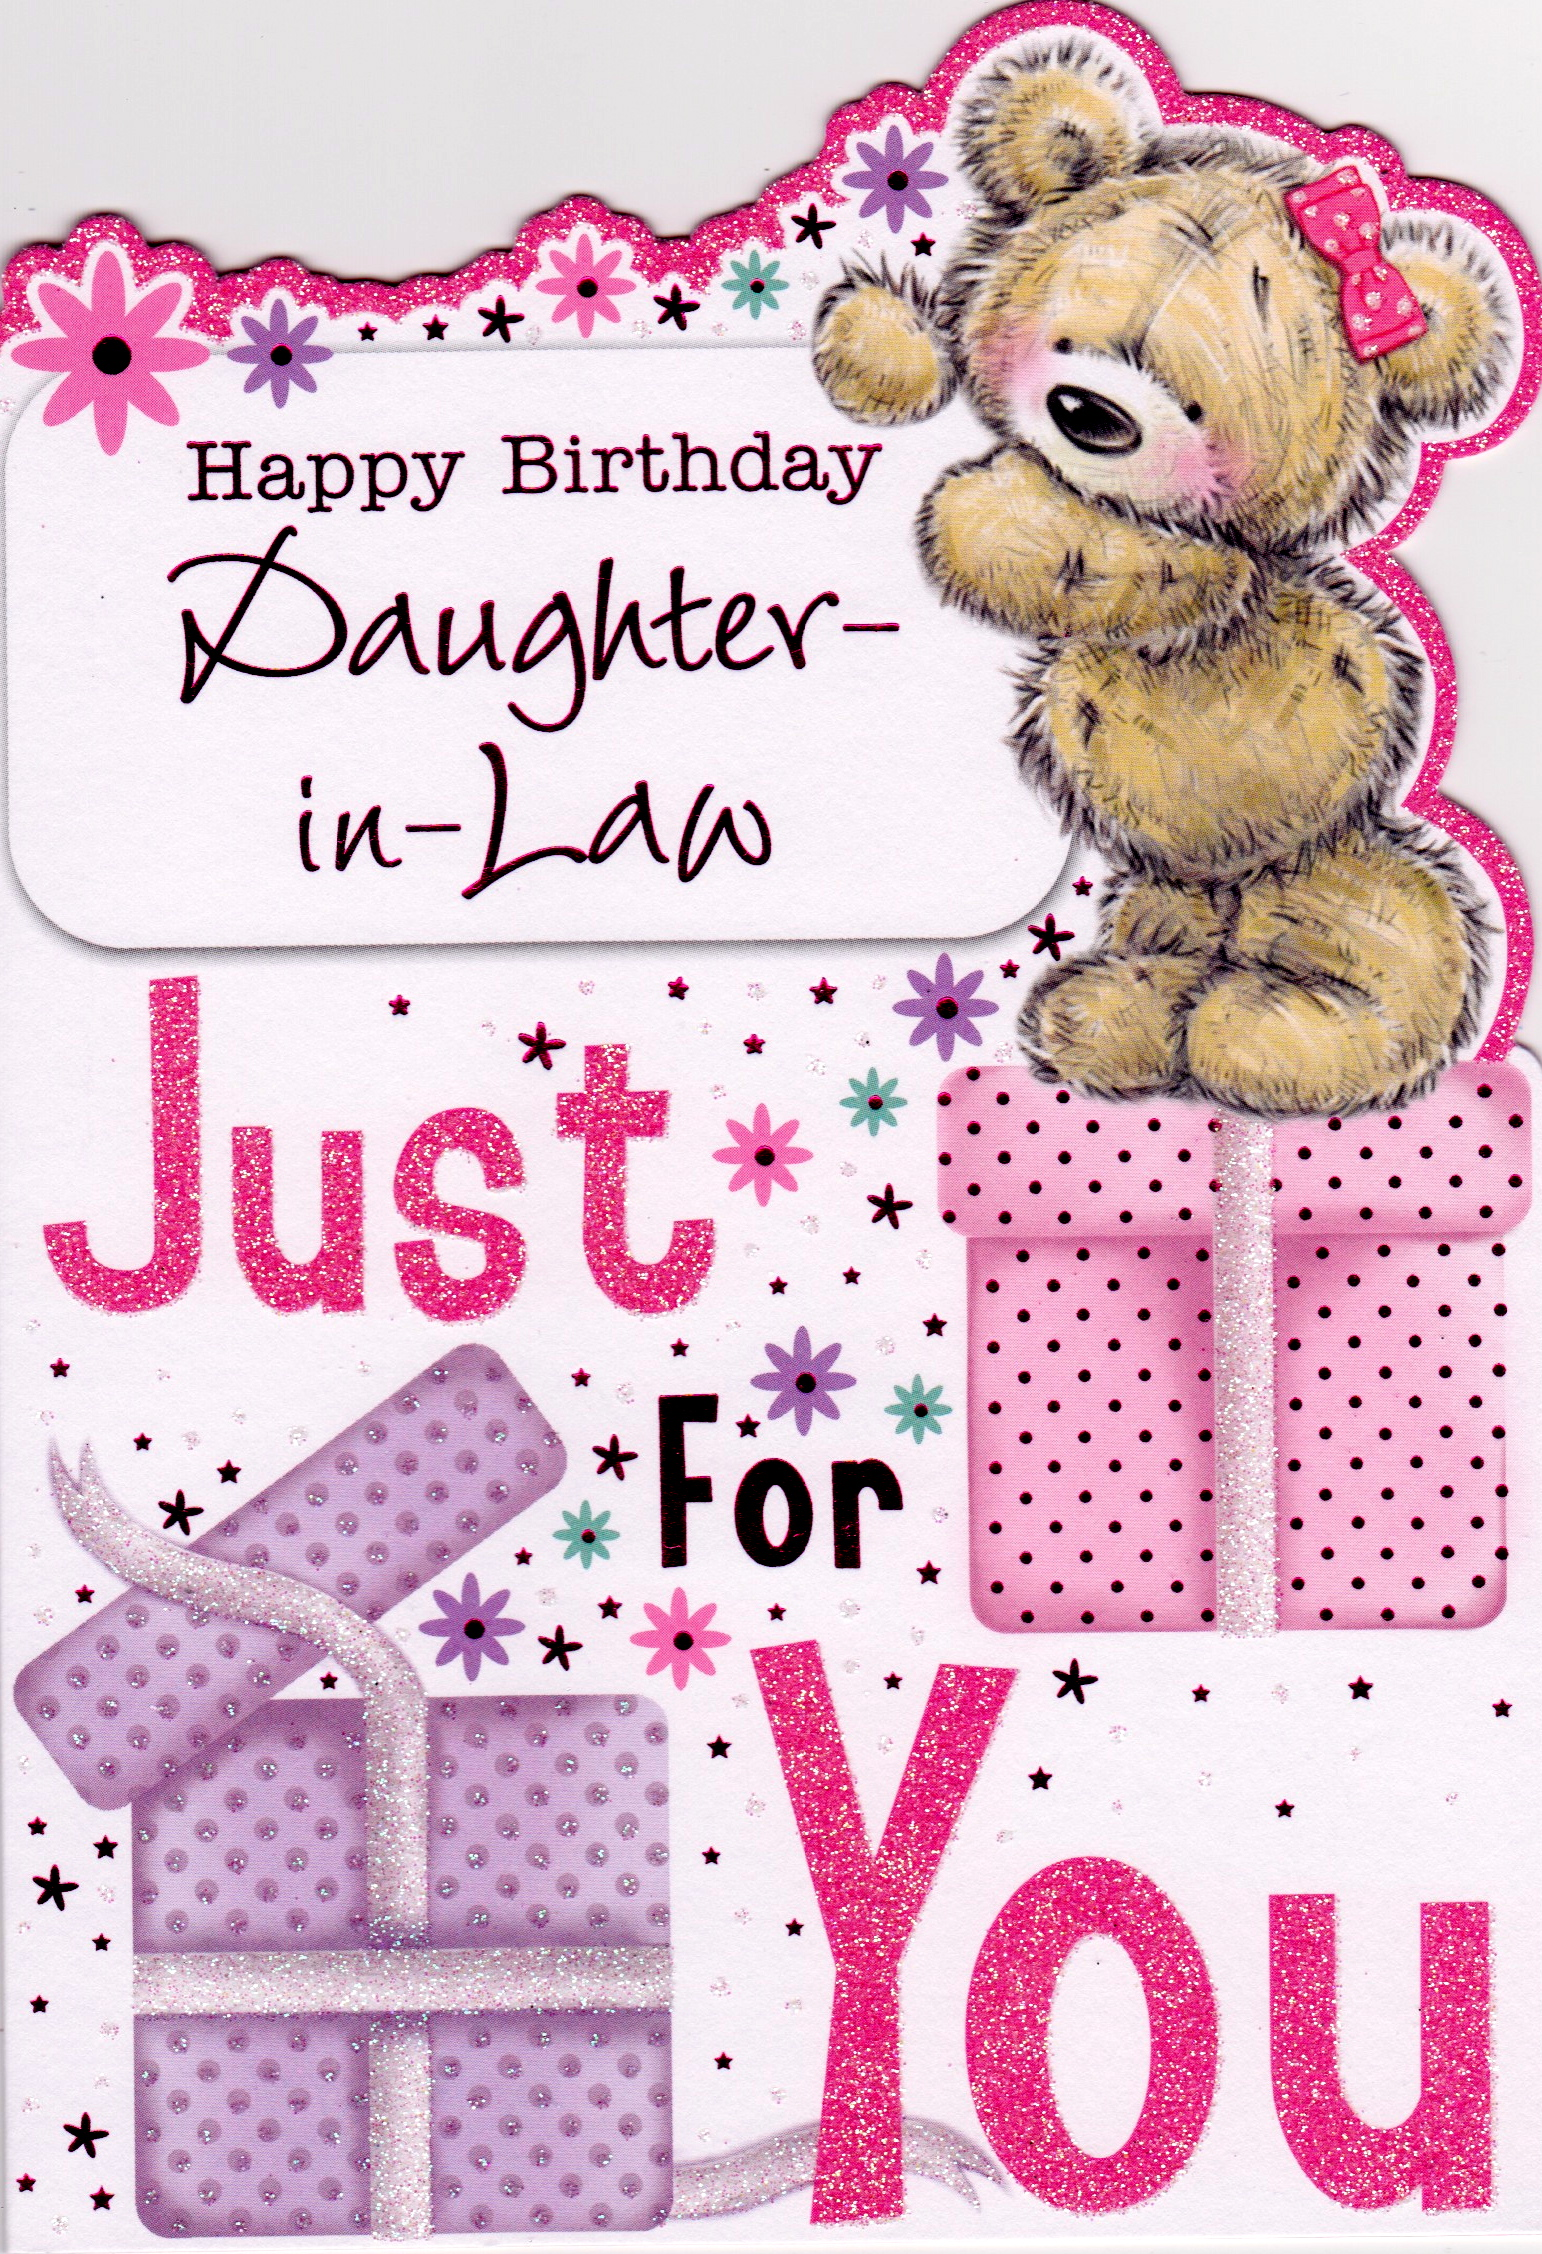 Happy birthday daughter in law clip art.